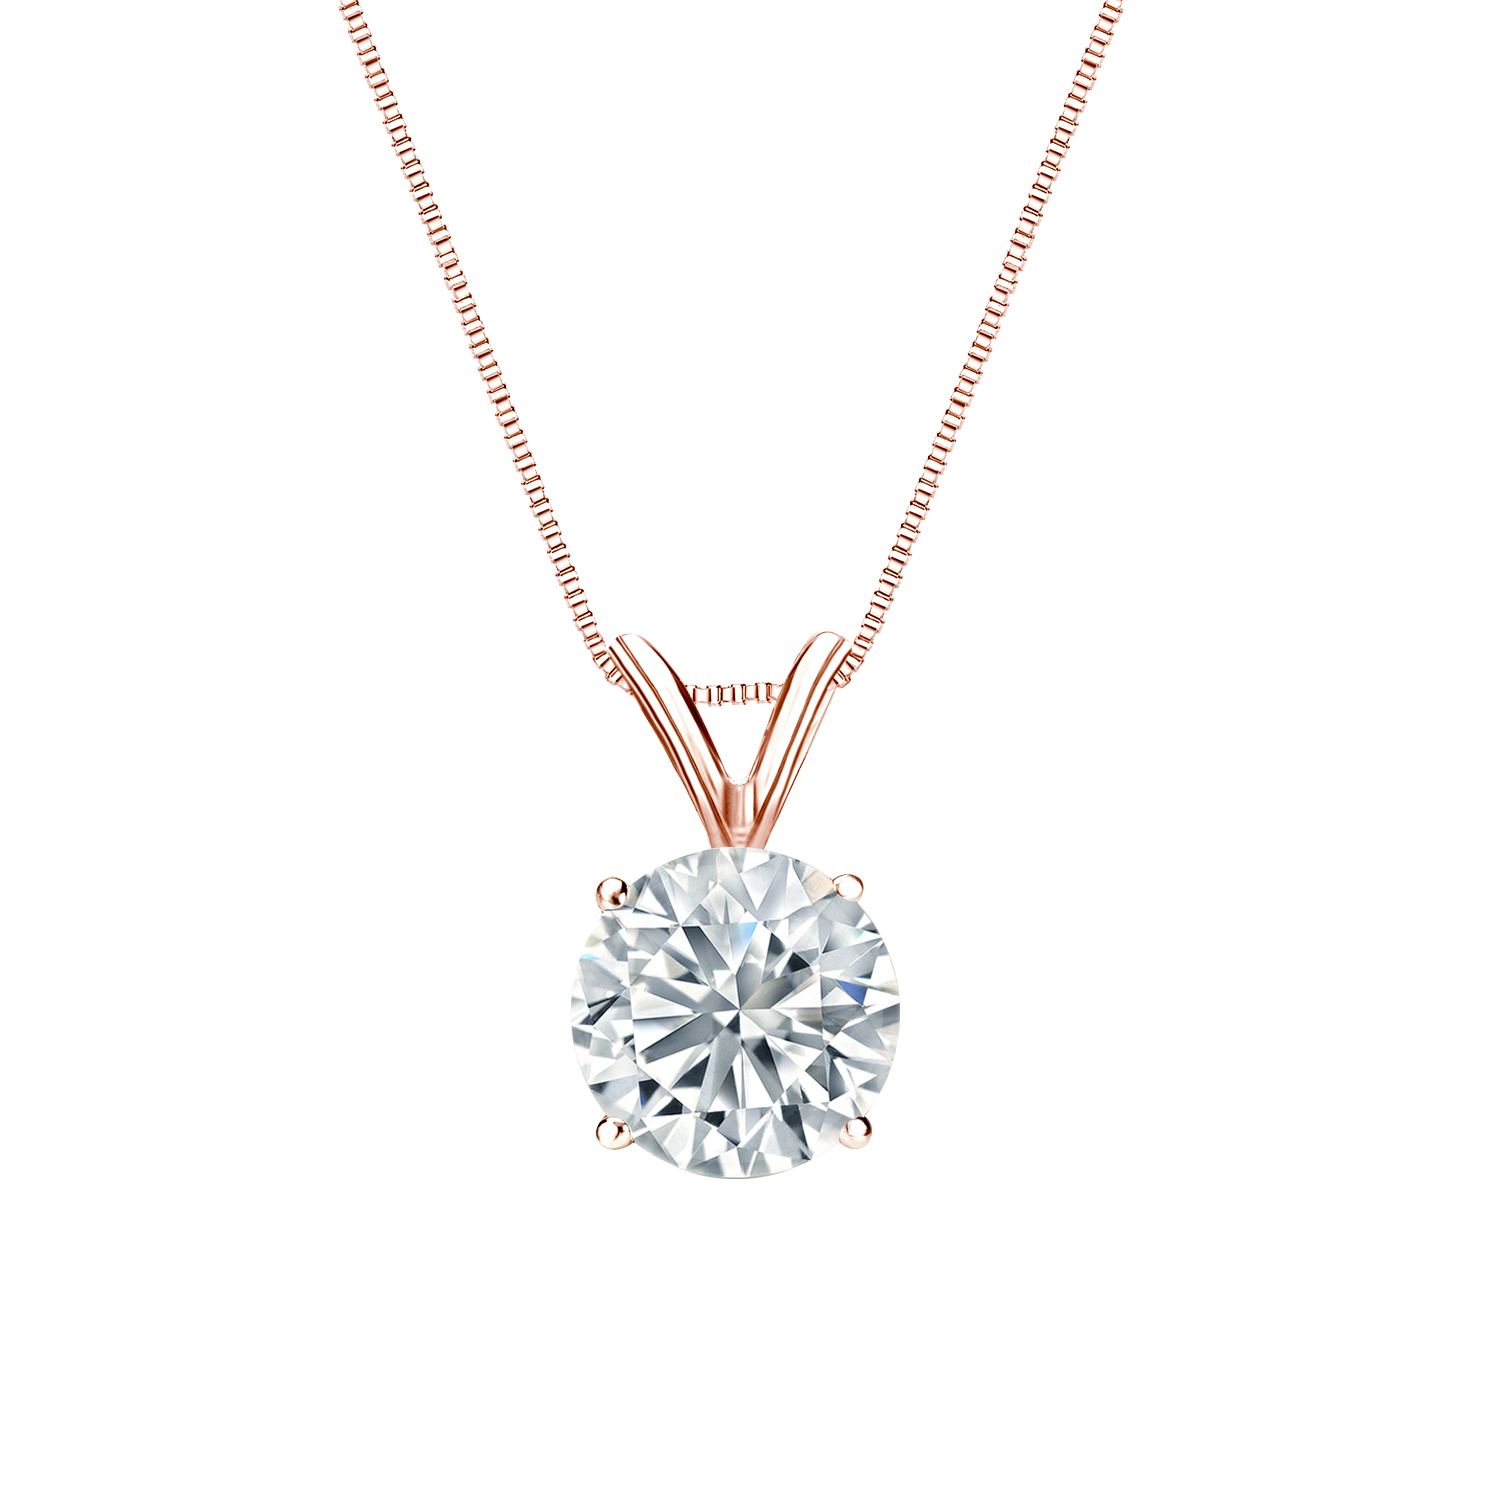 Certified 0.50 ct. tw. Round Diamond Solitaire Pendant in 14k Rose Gold 4-Prong Basket (I-J, I1)